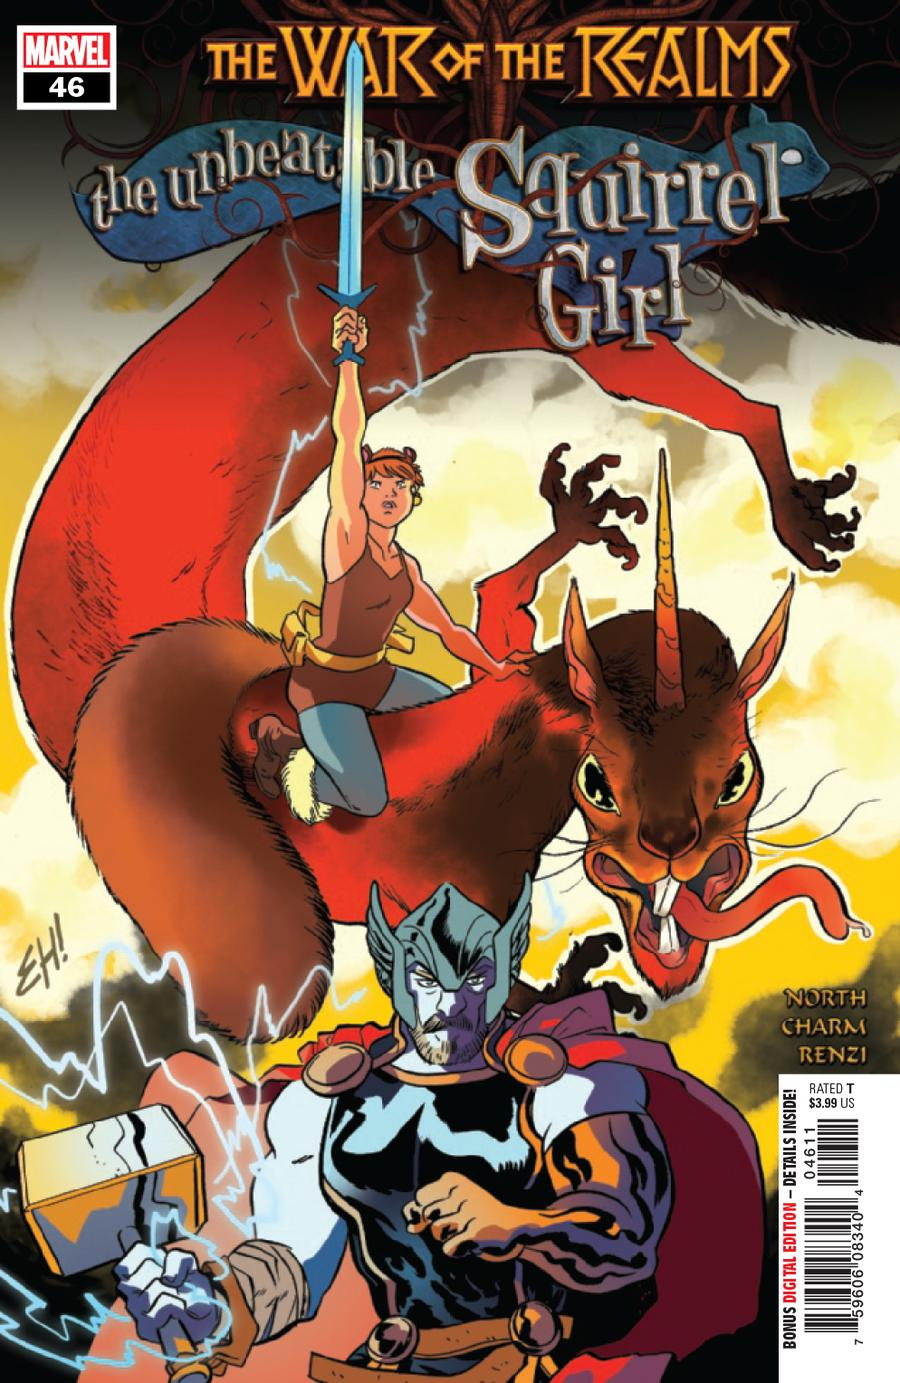 Unbeatable Squirrel Girl Vol 2 #46 (War Of The Realms Tie-In)